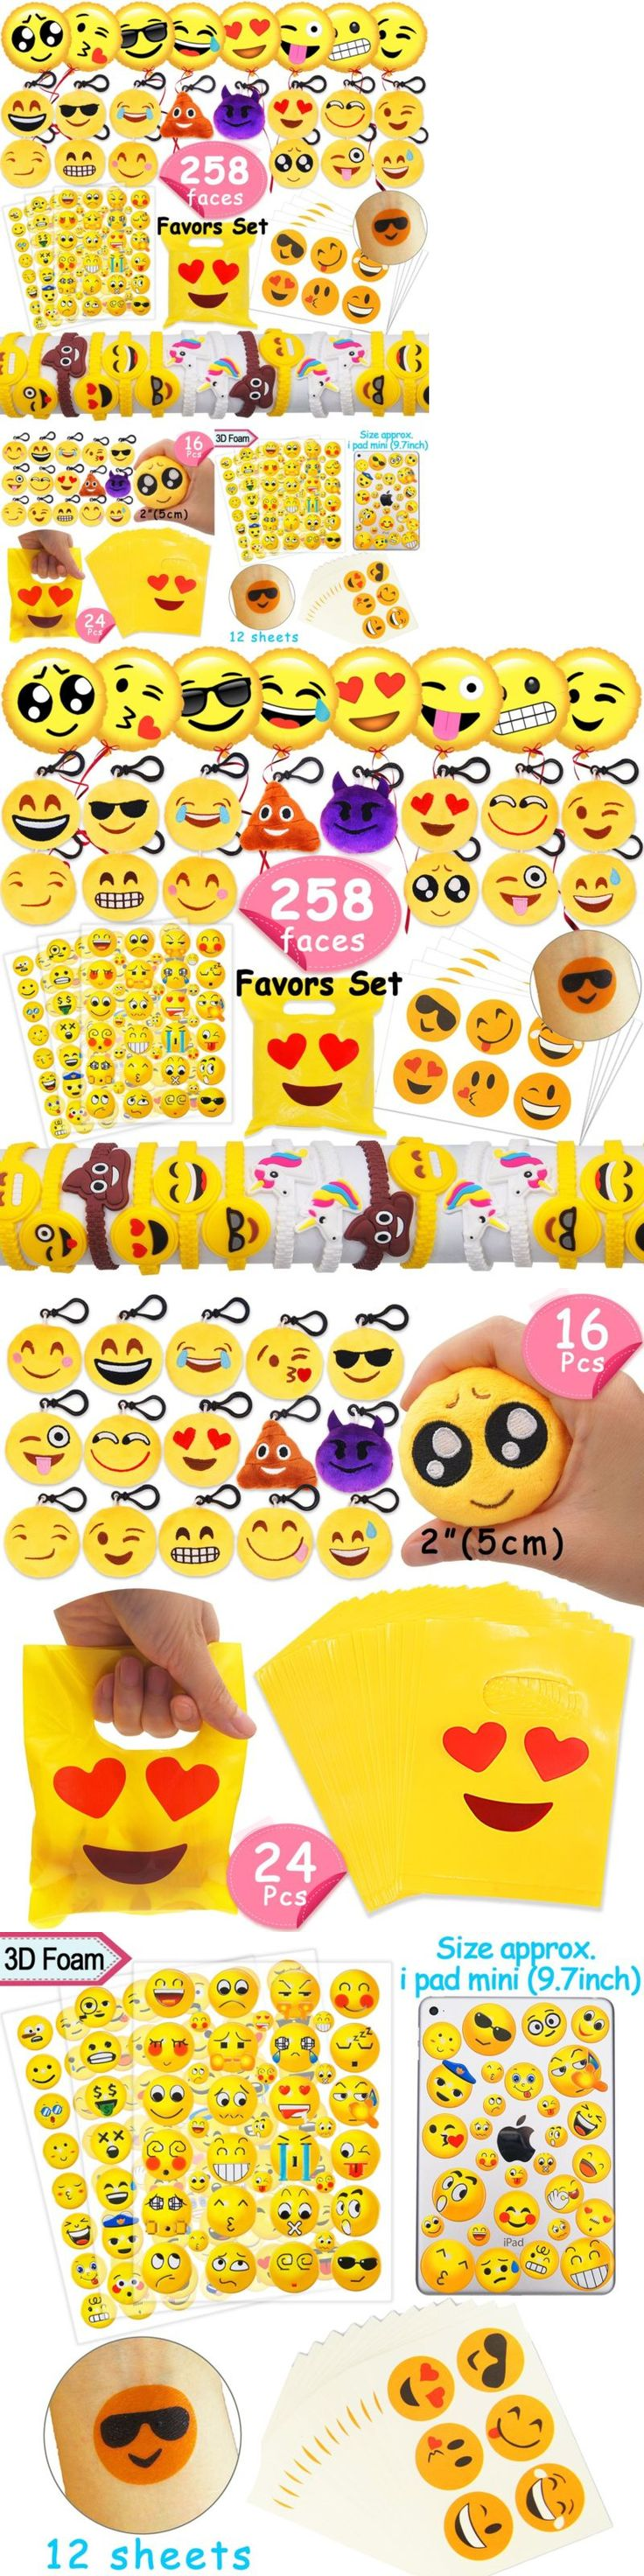 Favors and Party Bag Fillers 26385: Melonboat Emoji Party Favors Supplies 258 Faces Jumbo Pack Backpack Keychain Set -> BUY IT NOW ONLY: $33.13 on eBay!